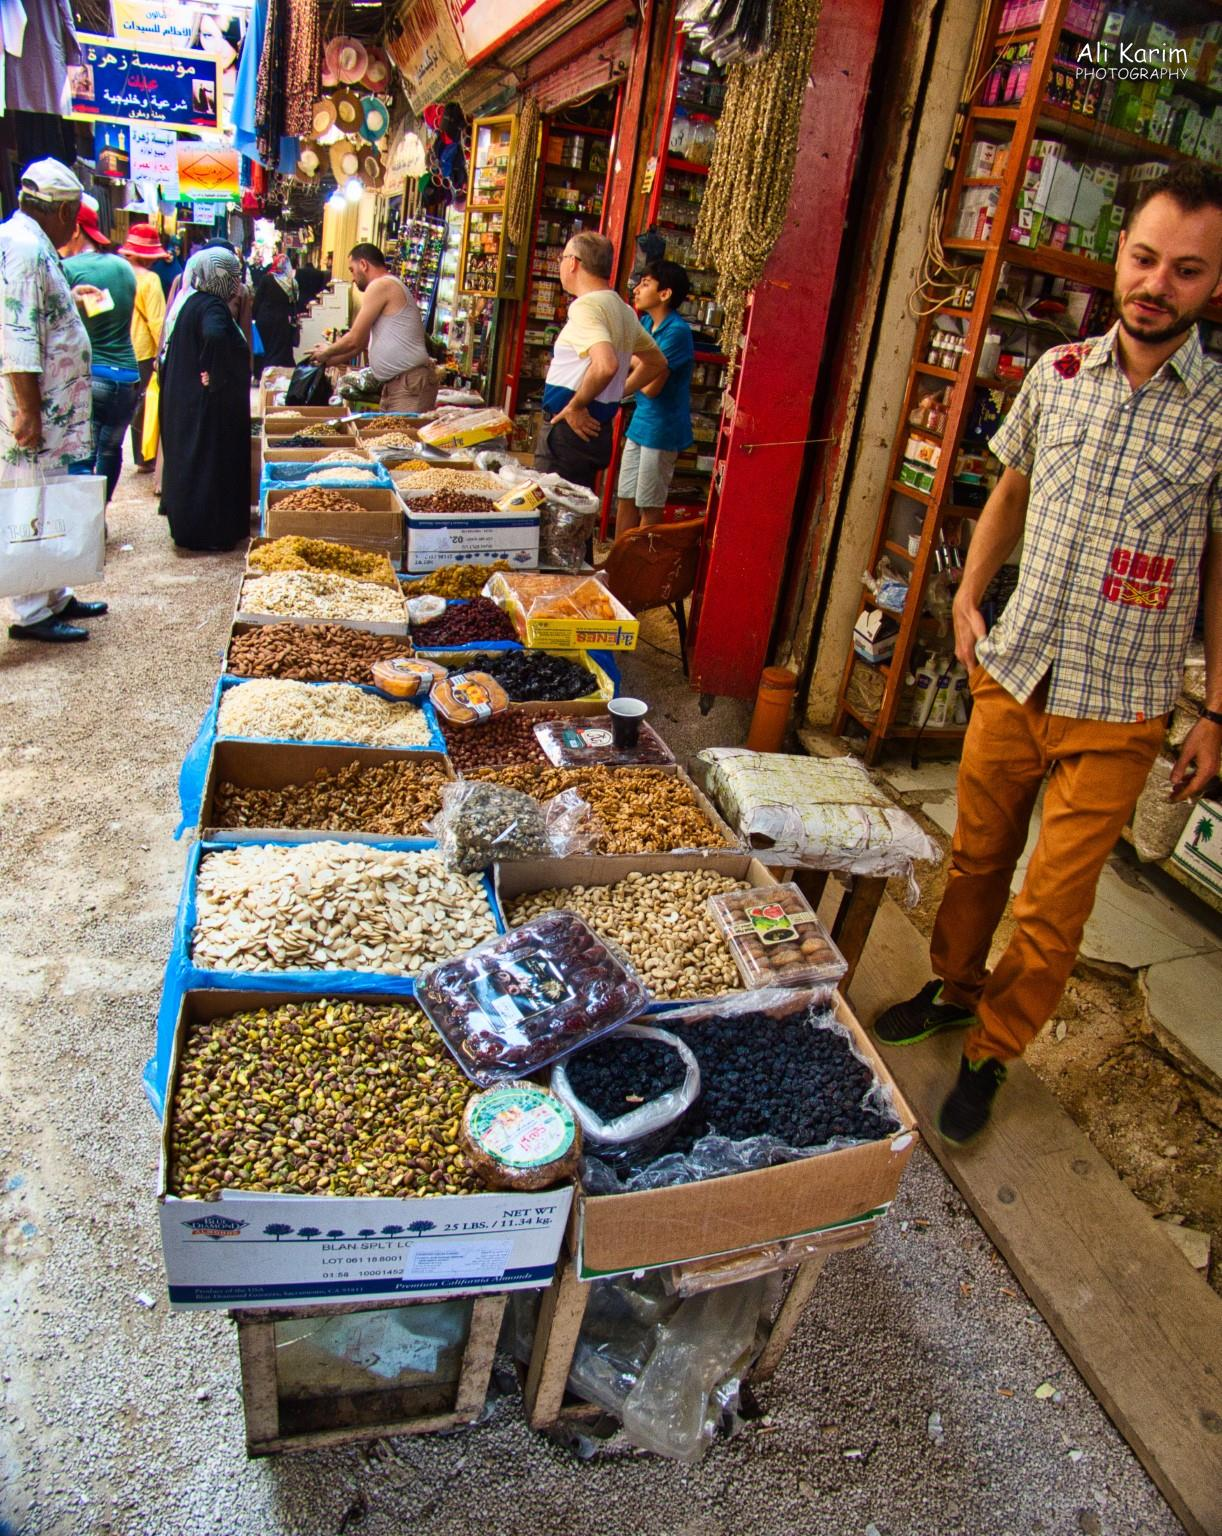 Tripoli Lebanon More nuts etc. Ali Khawaja, our guide, is on the left in the Hawaiian shirt